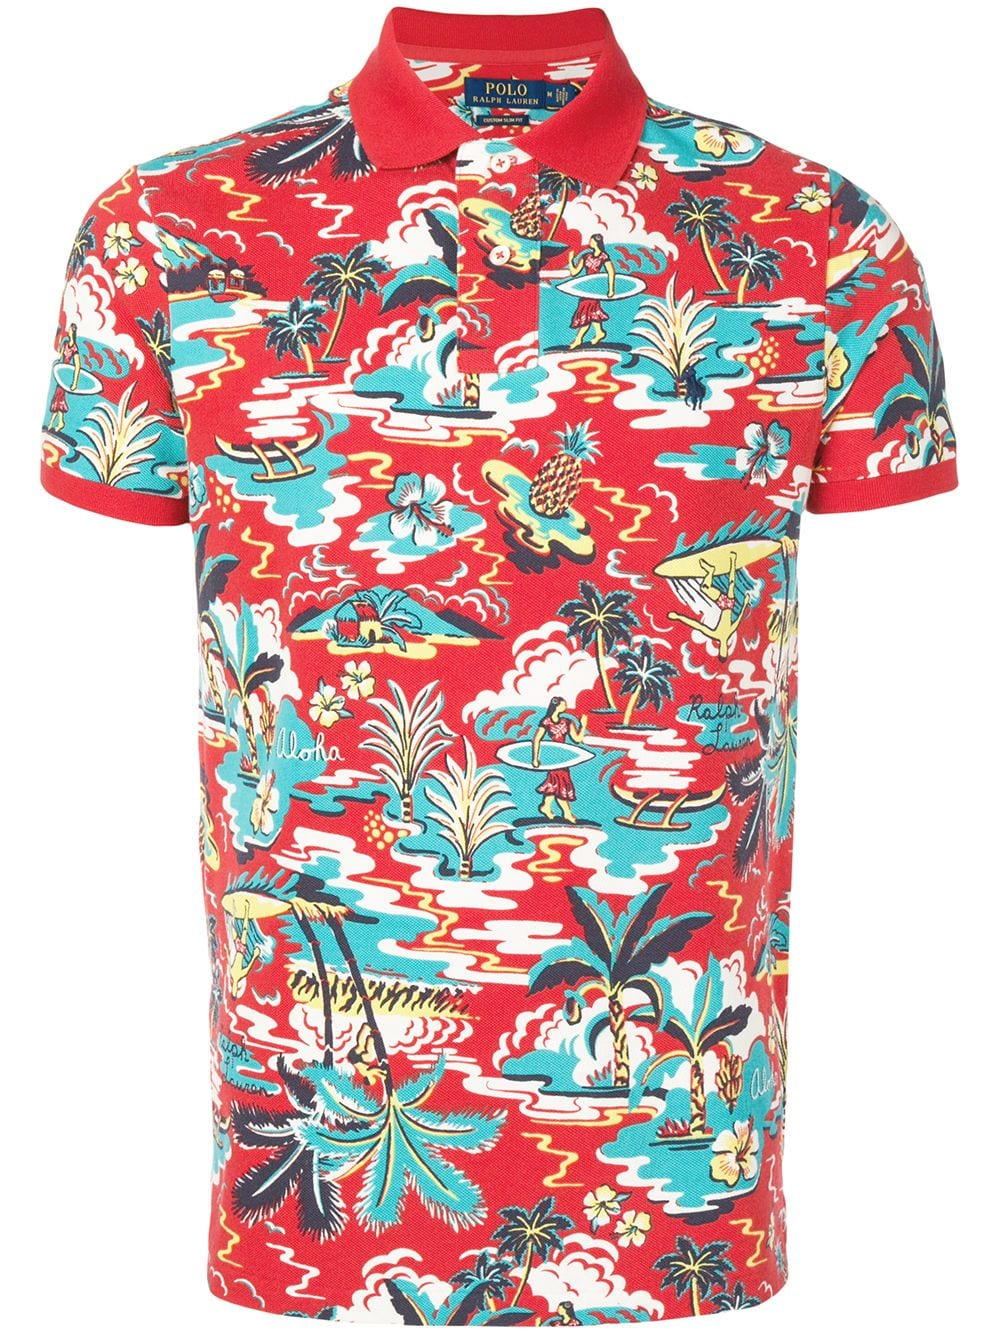 Polo Ralph Lauren T shirt men's big size short sleeves polo sports tops print cut and sew street fashion Polo Ralph Lauren POLO SPORT CLASSIC FIT TEE